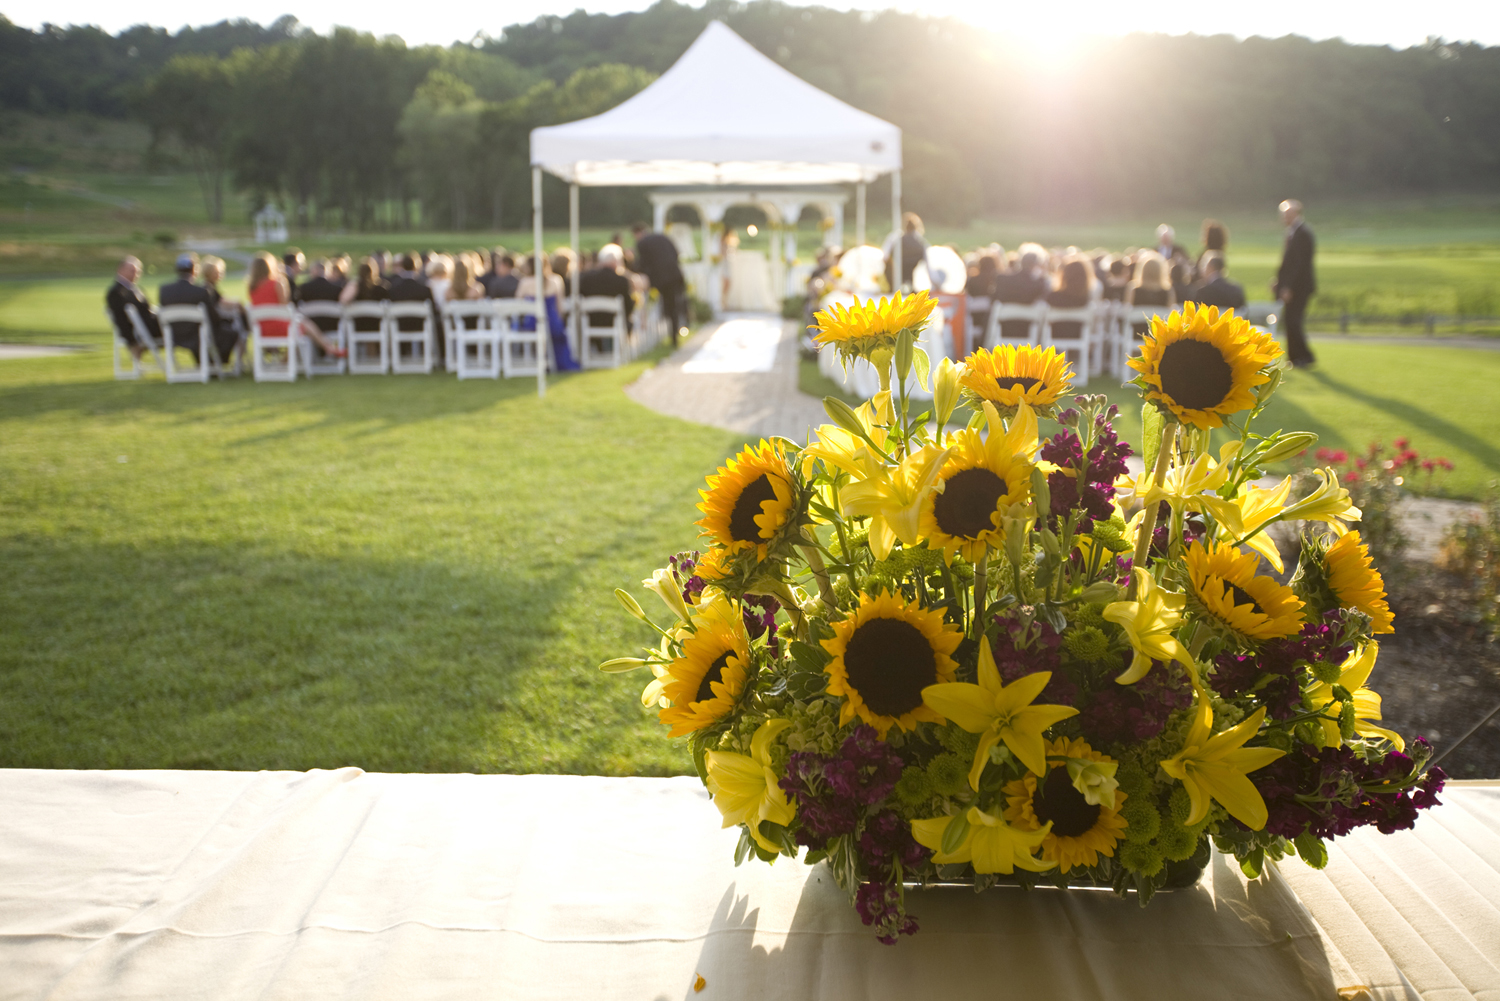 sunflowers set the scene for wedding ceremony at Harbor Links. Long Island wedding photographers